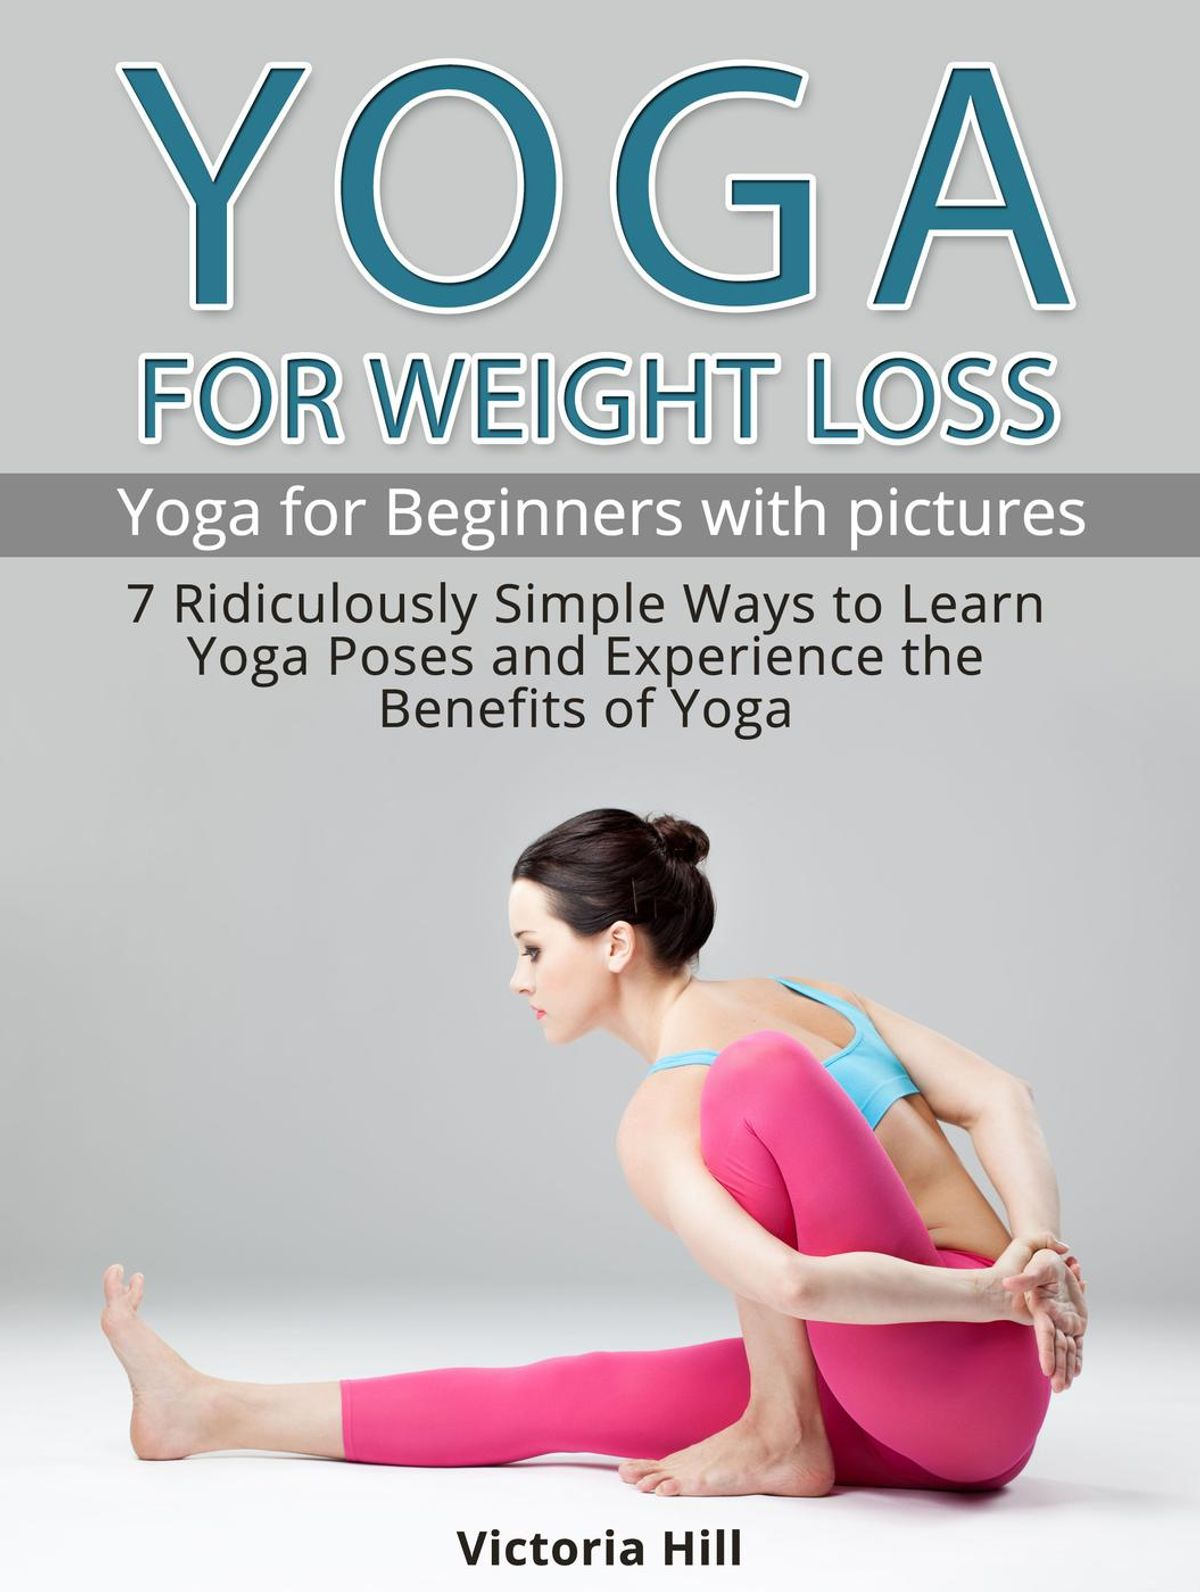 Yoga For Weight Loss 7 Ridiculously Simple Ways To Learn Yoga Poses And Experience The Benefits Of Yoga Yoga For Beginners Ebook Walmart Com Walmart Com